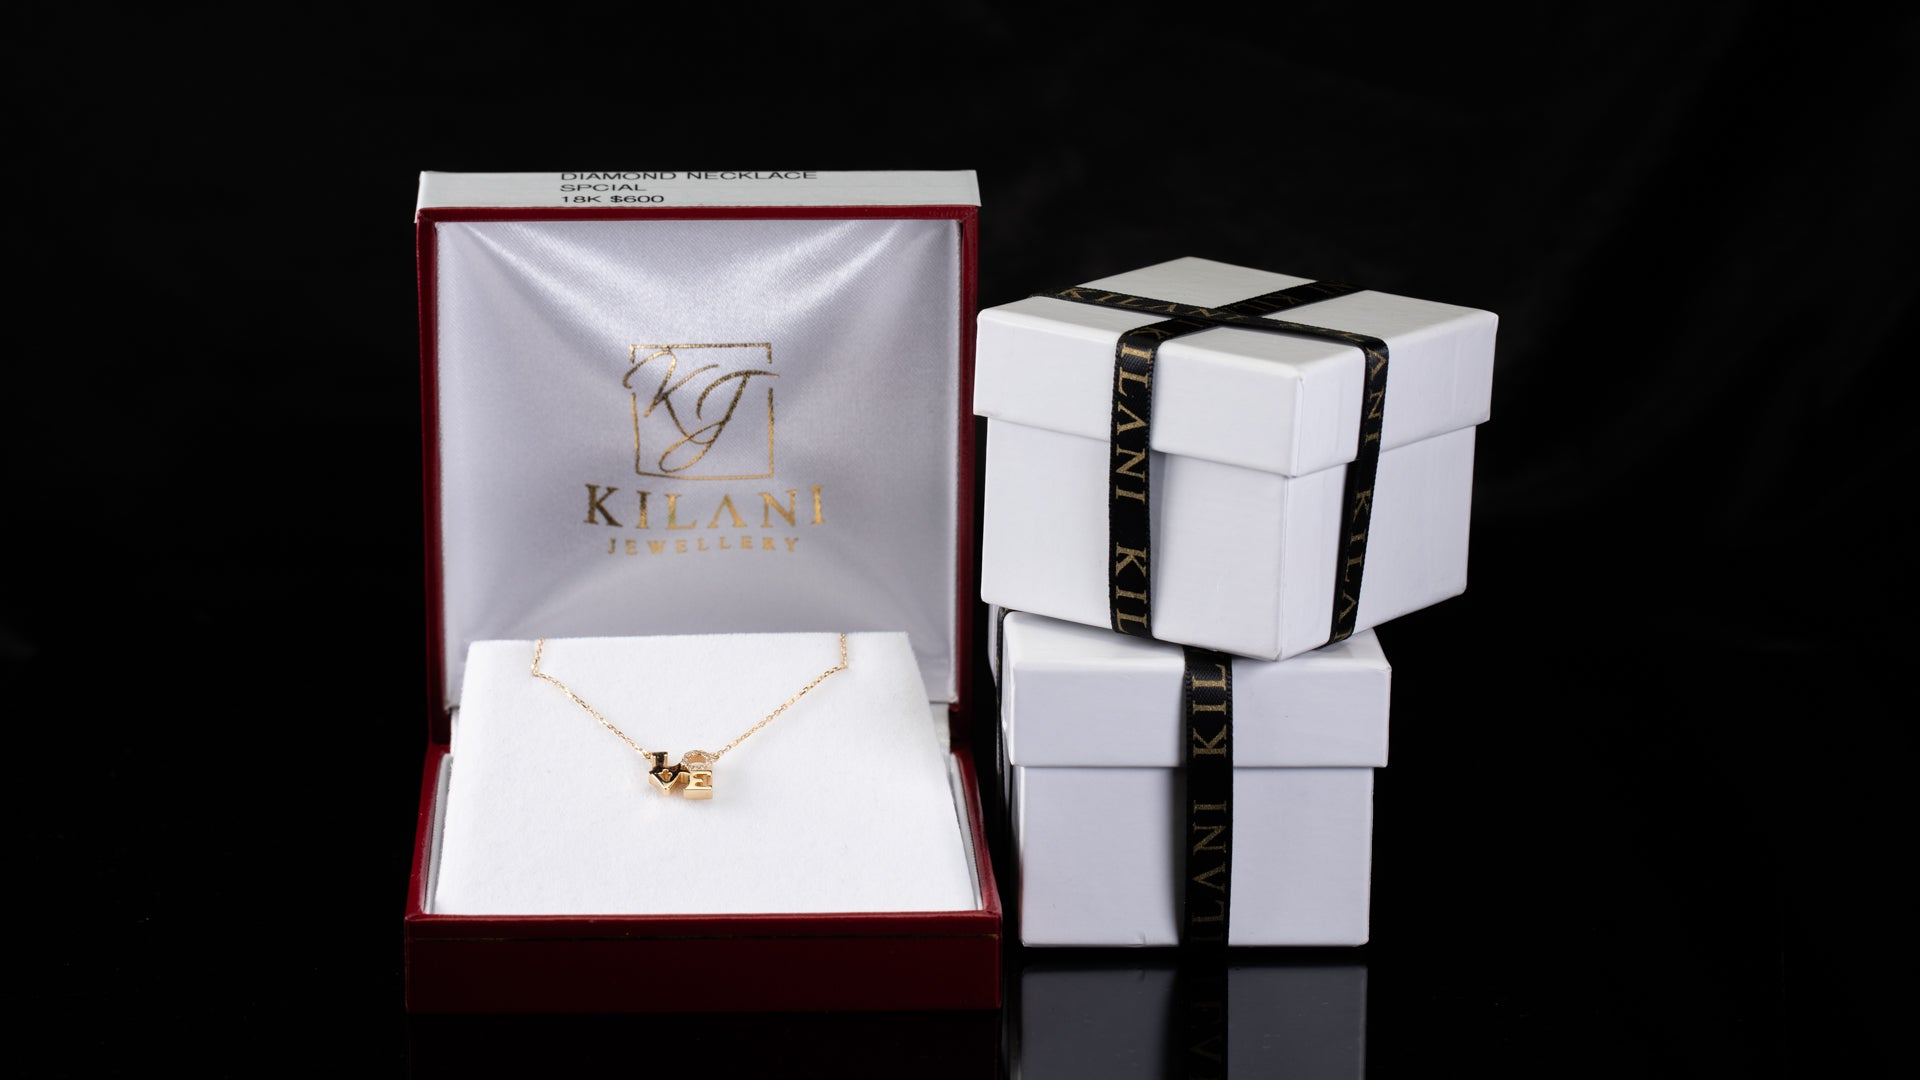 [SPECIAL] 18k Yellow Gold Love Square Diamond Necklace